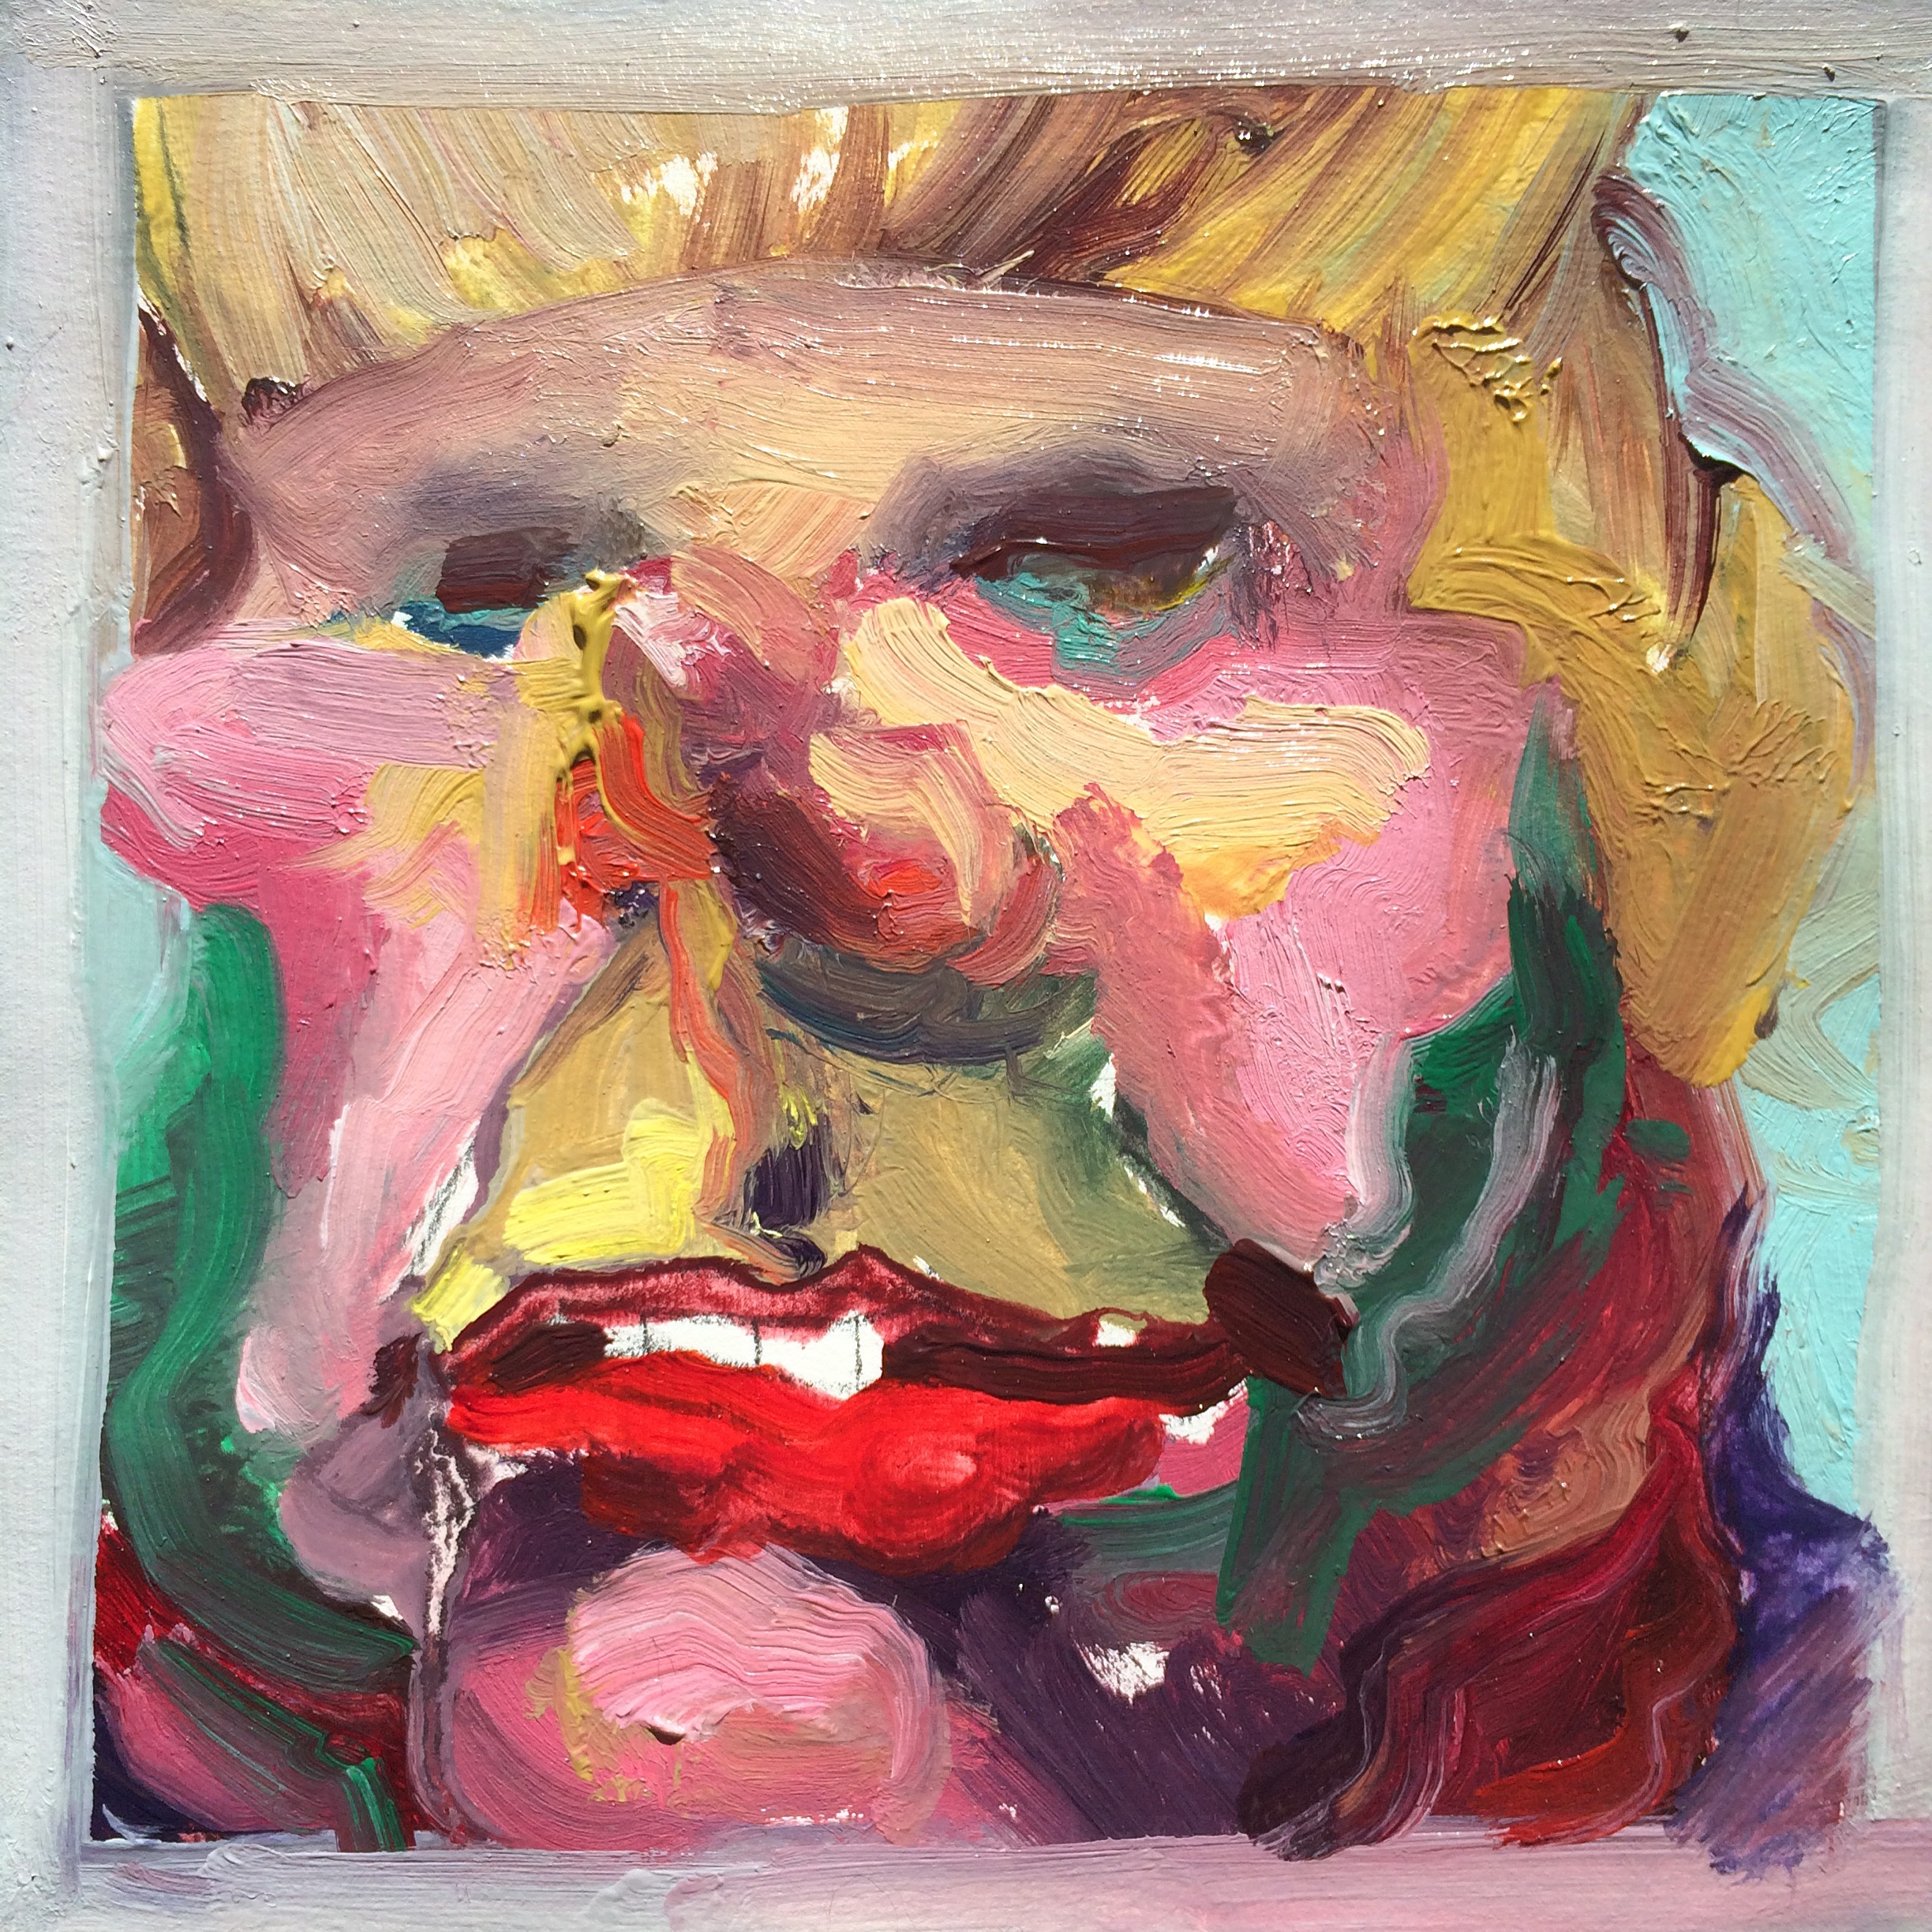 A vibrantly colored oil painting of a close up portrait of a grotesque looking blonde person.